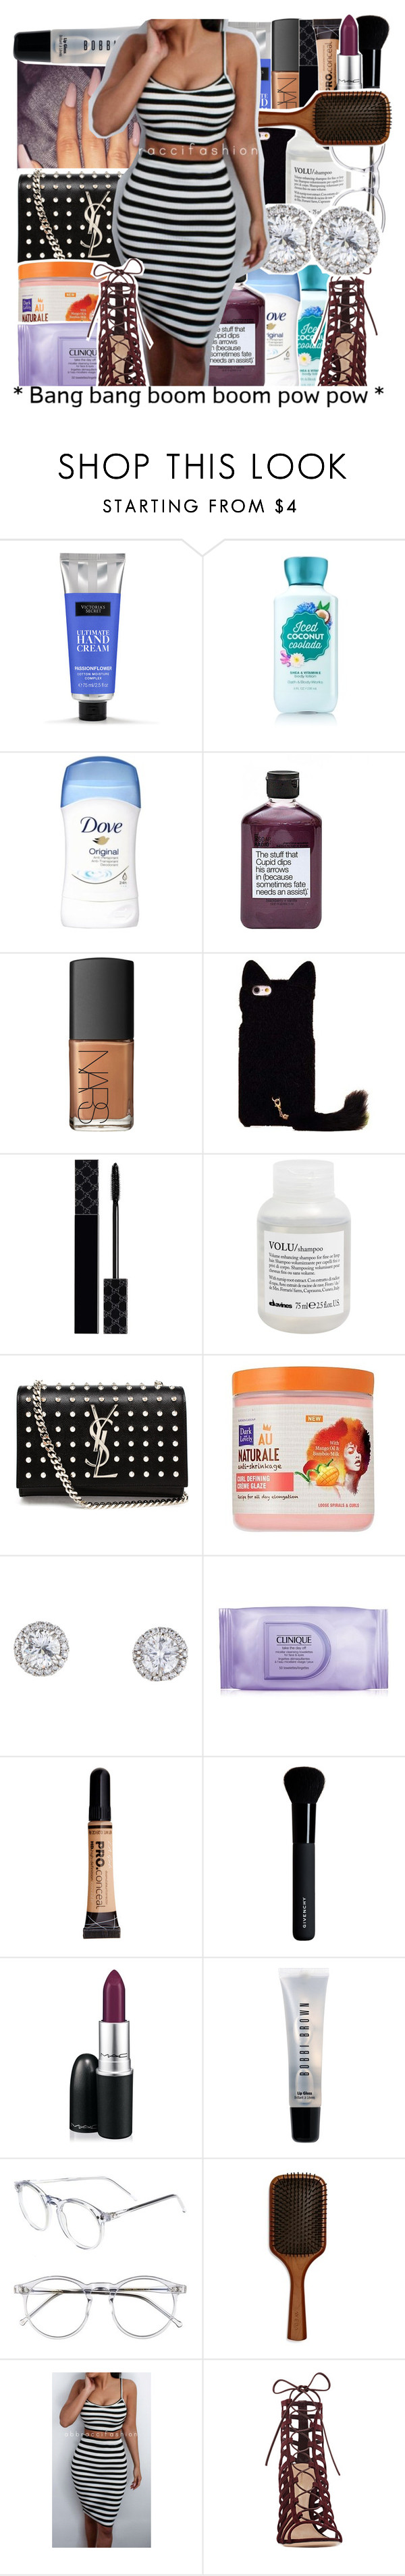 """"""": thirty six :"""" by tynescloset ❤ liked on Polyvore featuring Not Soap, Radio, NARS Cosmetics, Gucci, Davines, Yves Saint Laurent, Dark & Lovely, Clinique, Givenchy, MAC Cosmetics and Bobbi Brown Cosmetics"""